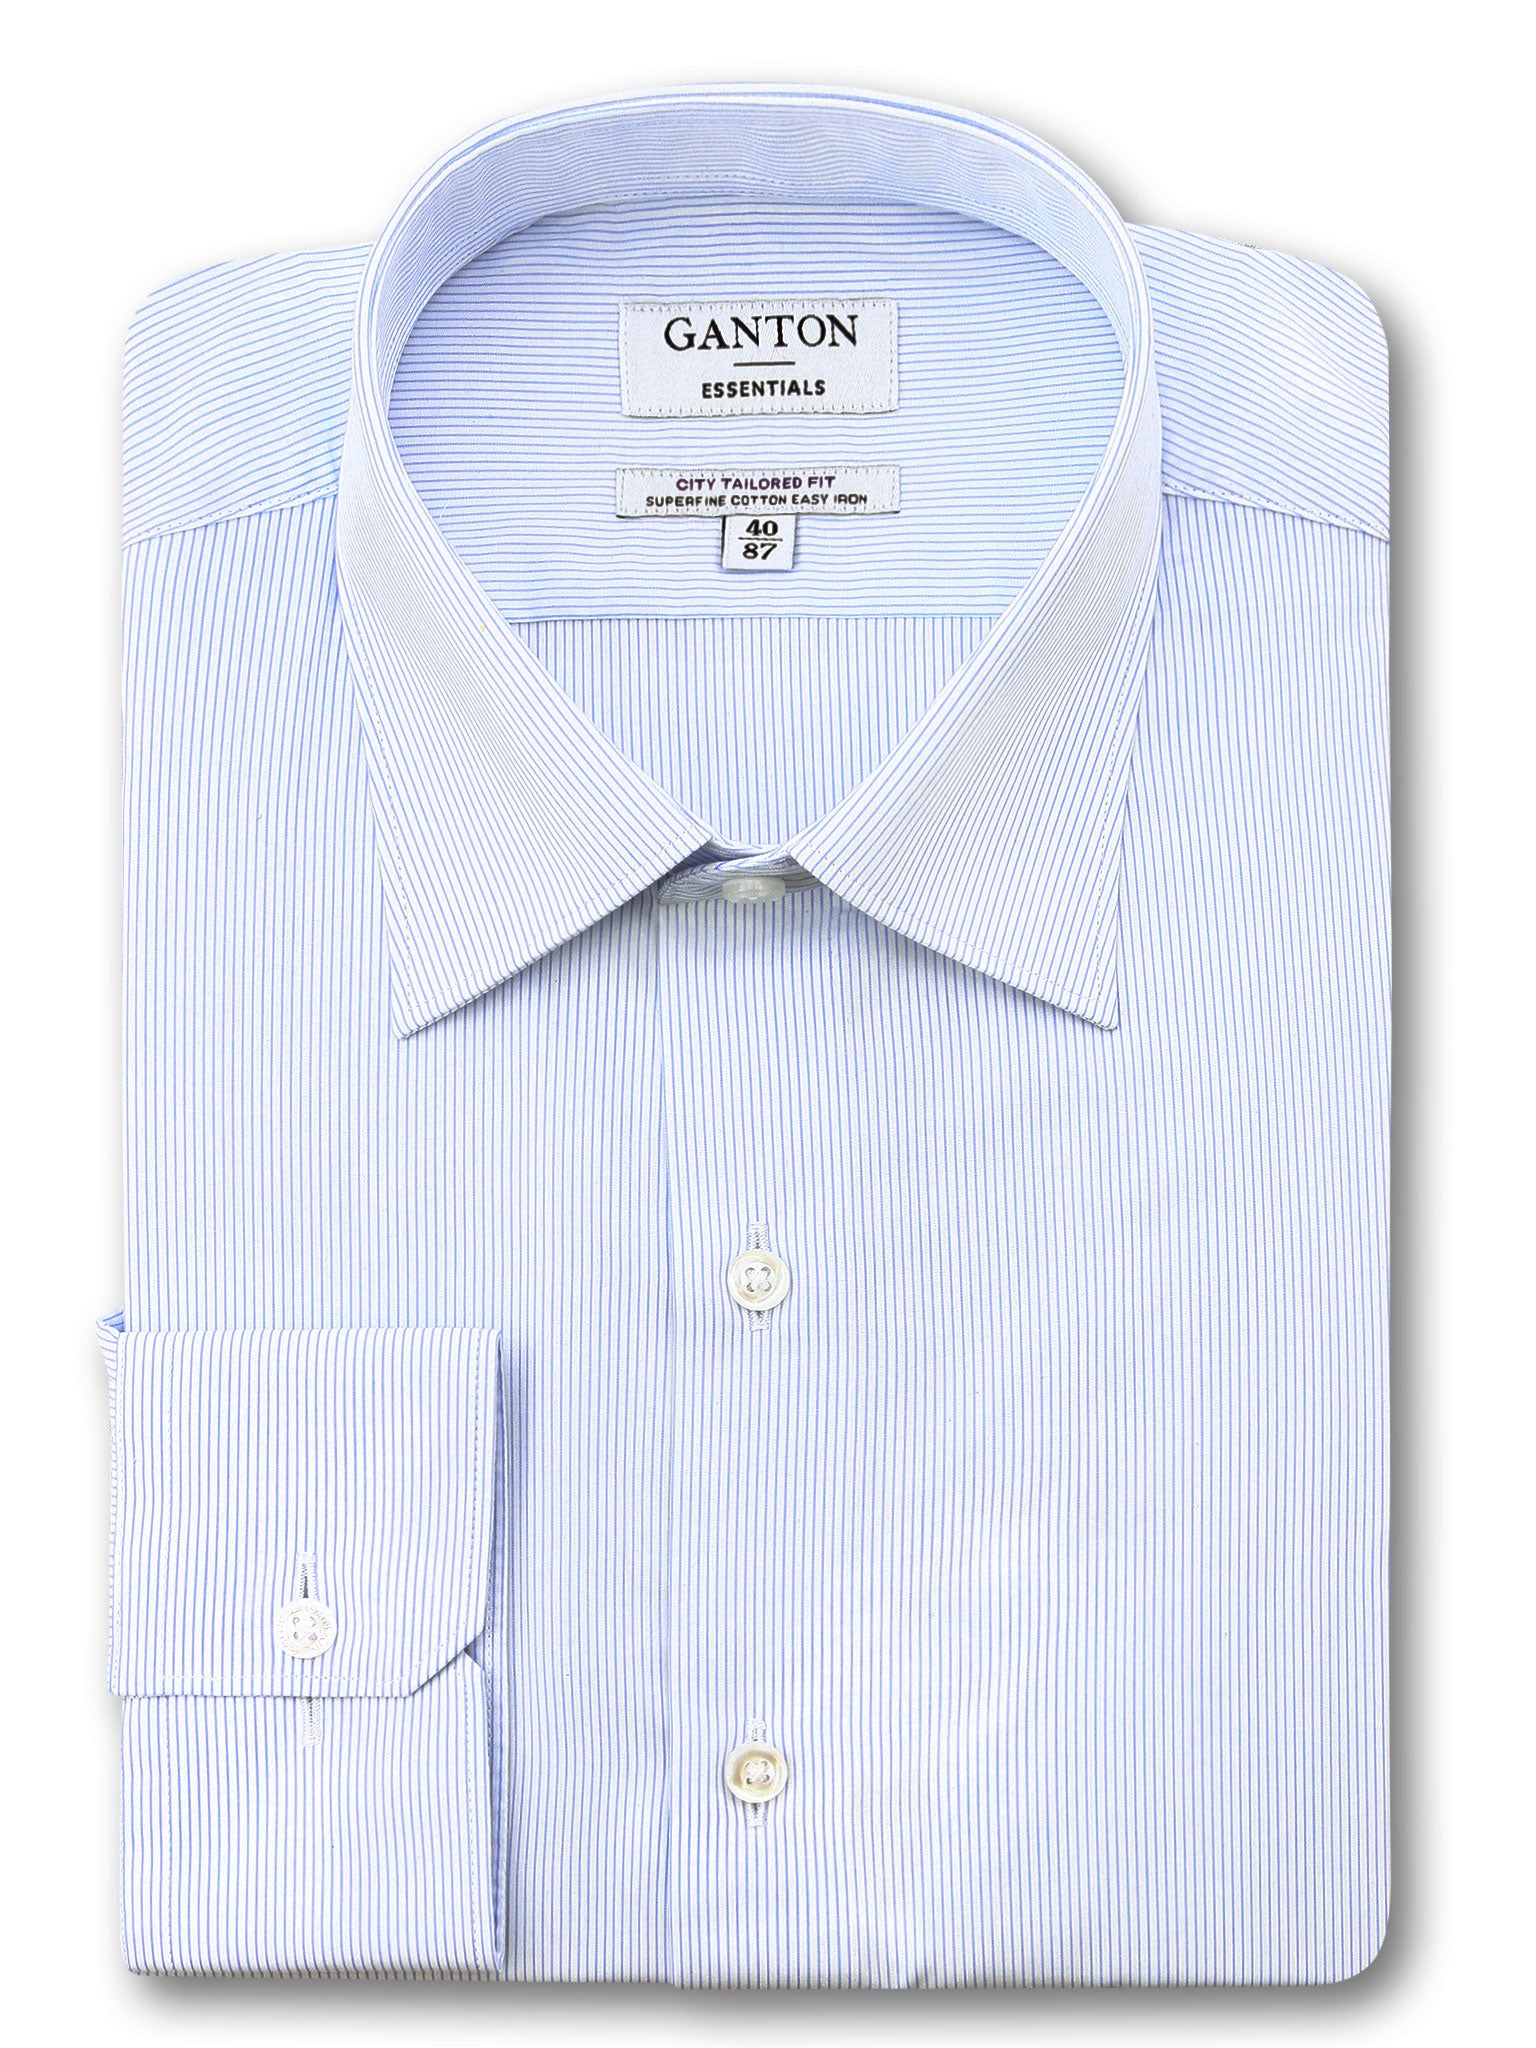 All Light Blue White Stripe Tailored Fit Ed Easy Iron Superfine Cotton Essentials Shirt